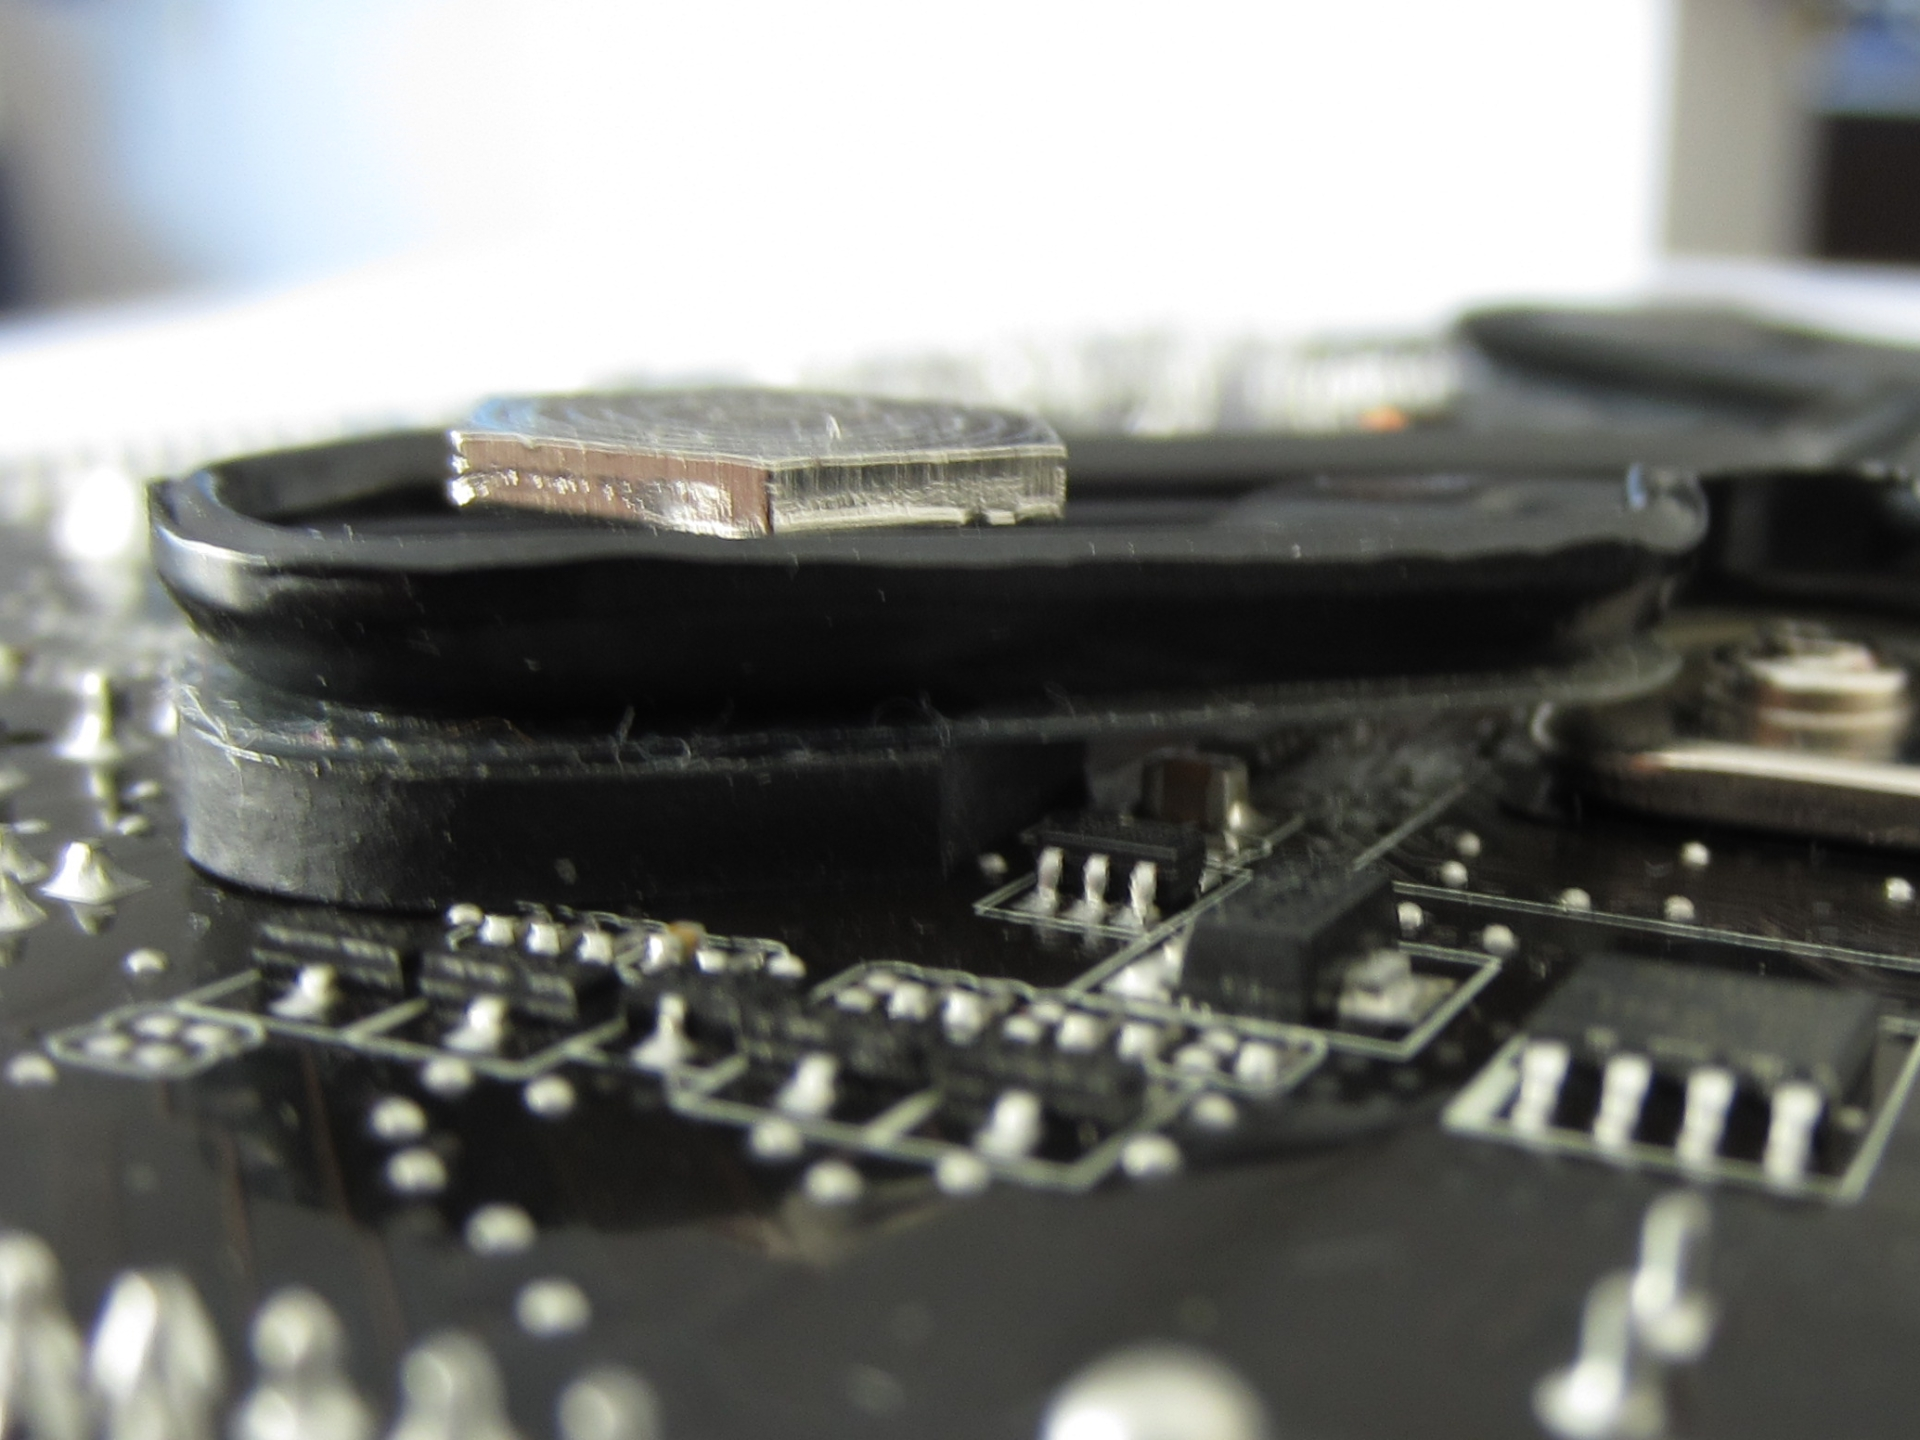 backplate_component_cut.jpg